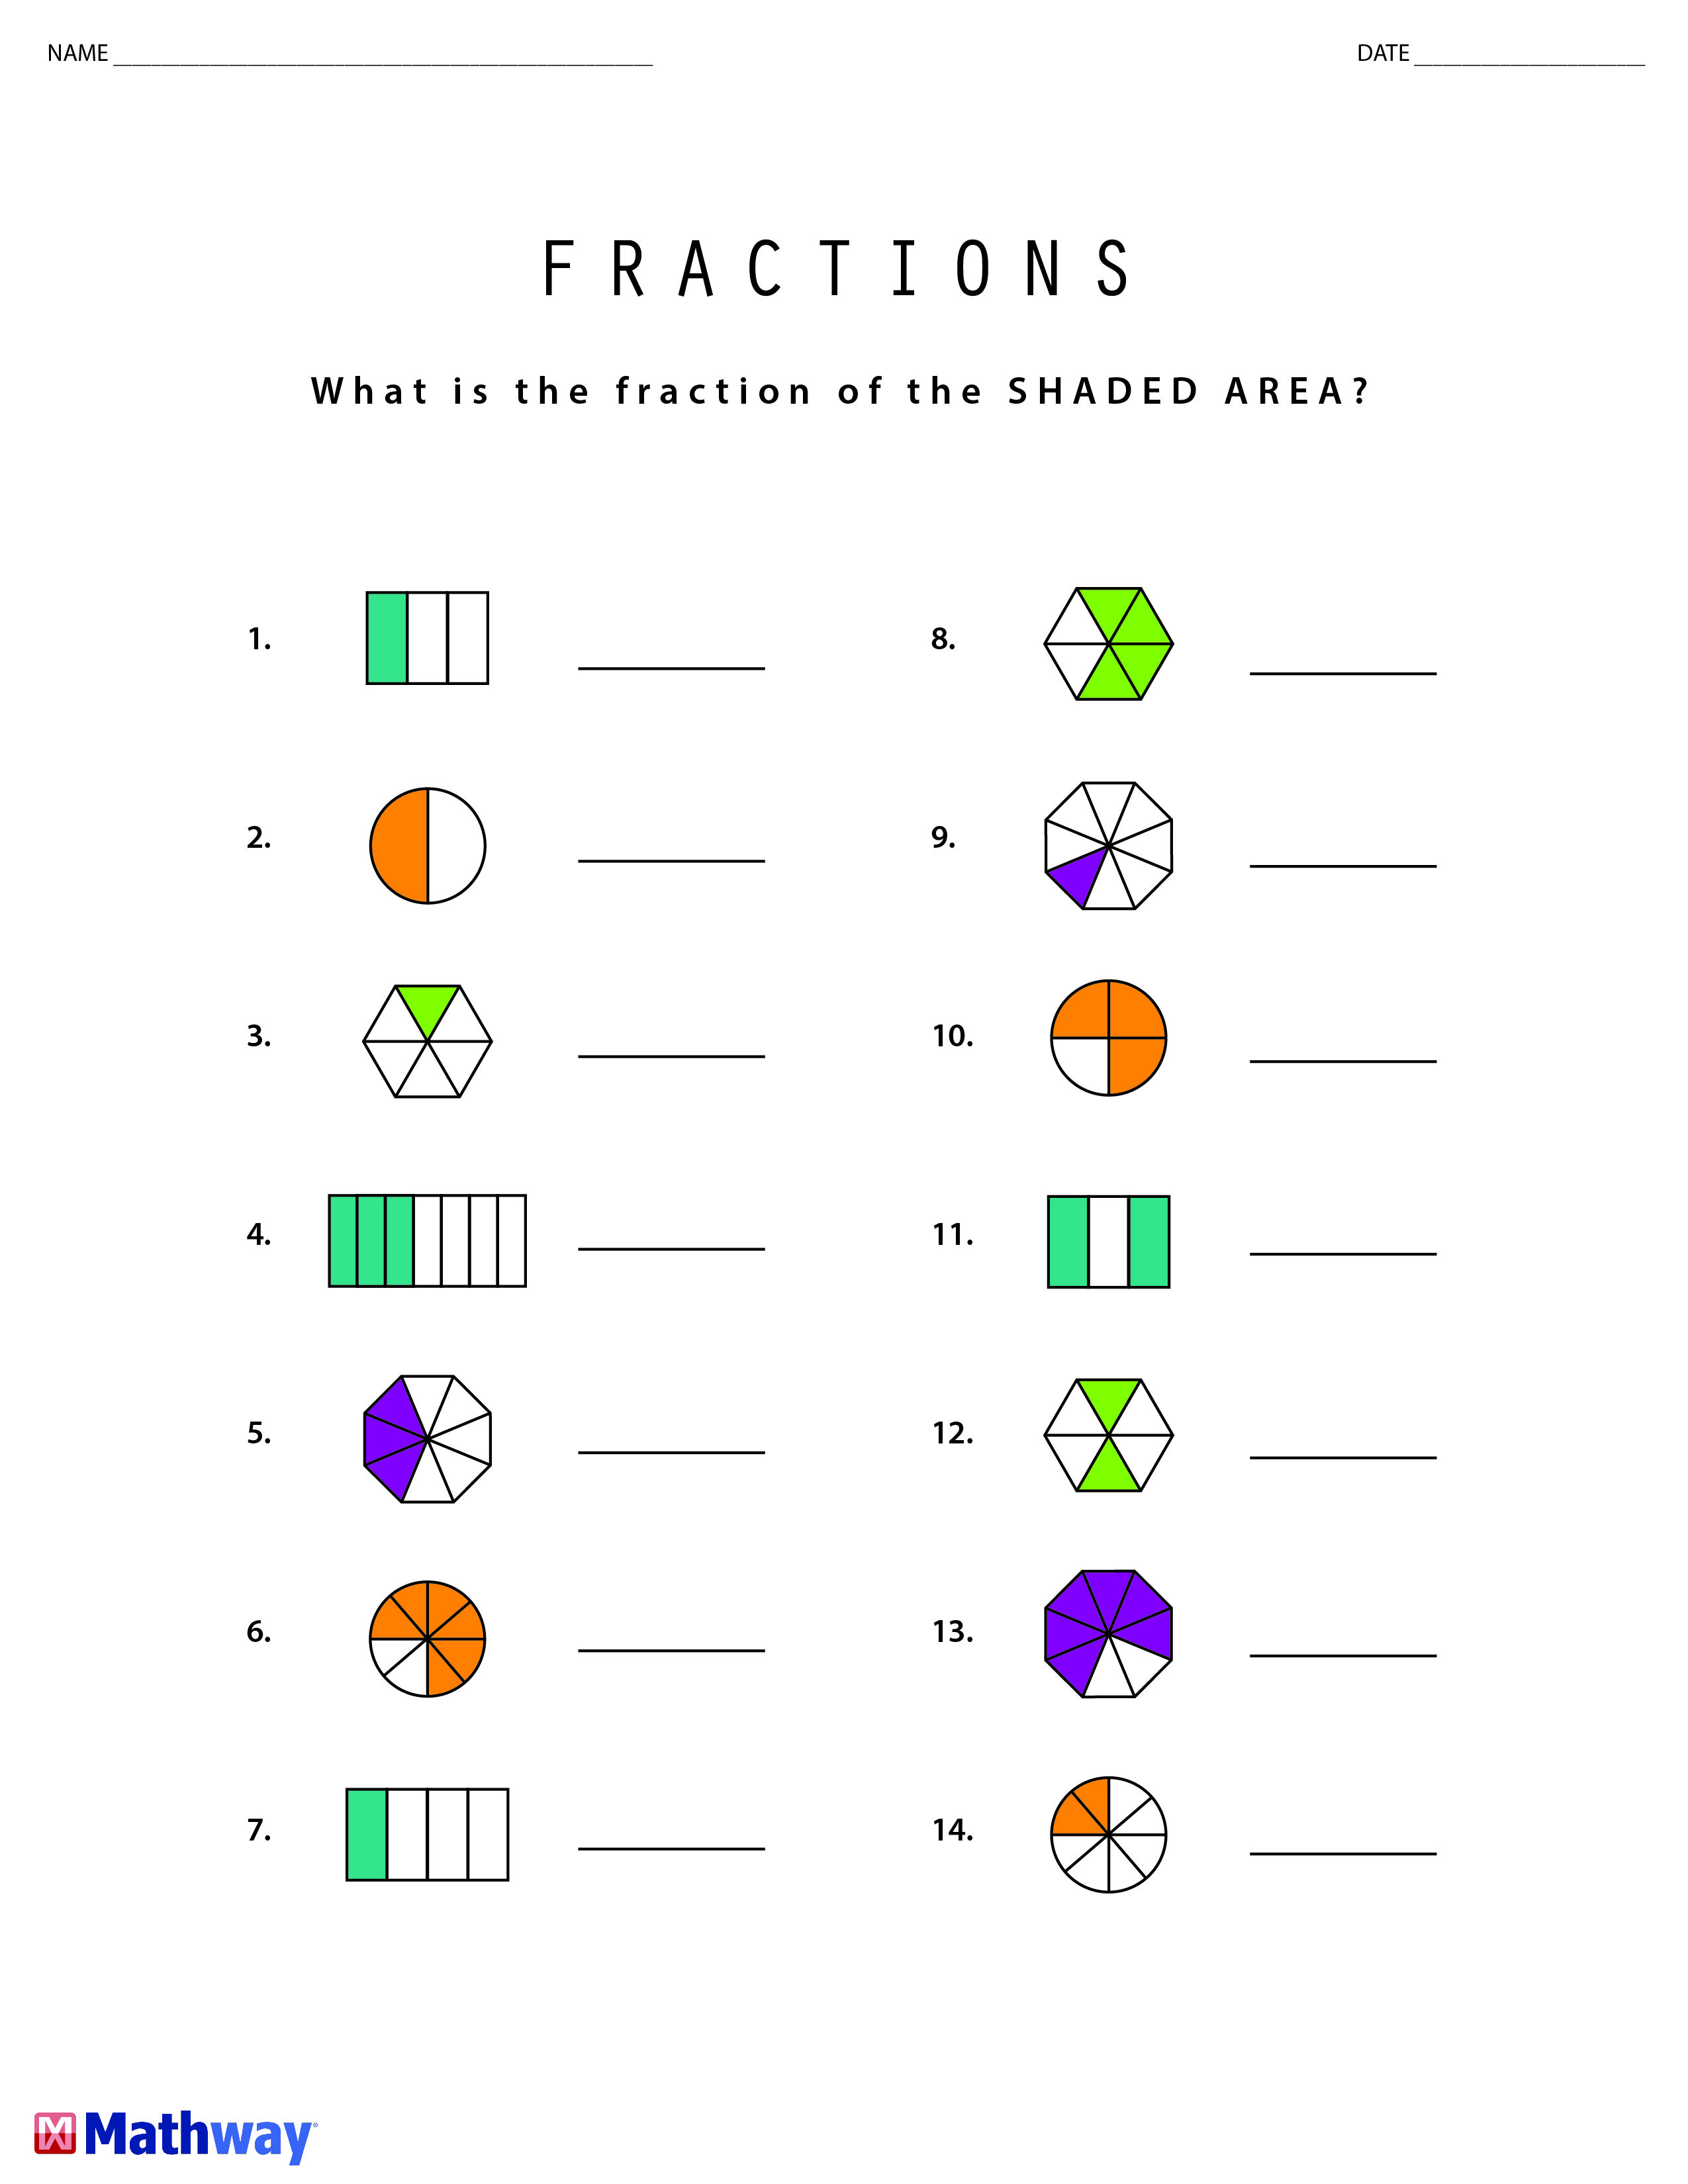 Learning Fractions Print Out This Worksheet Follow Our